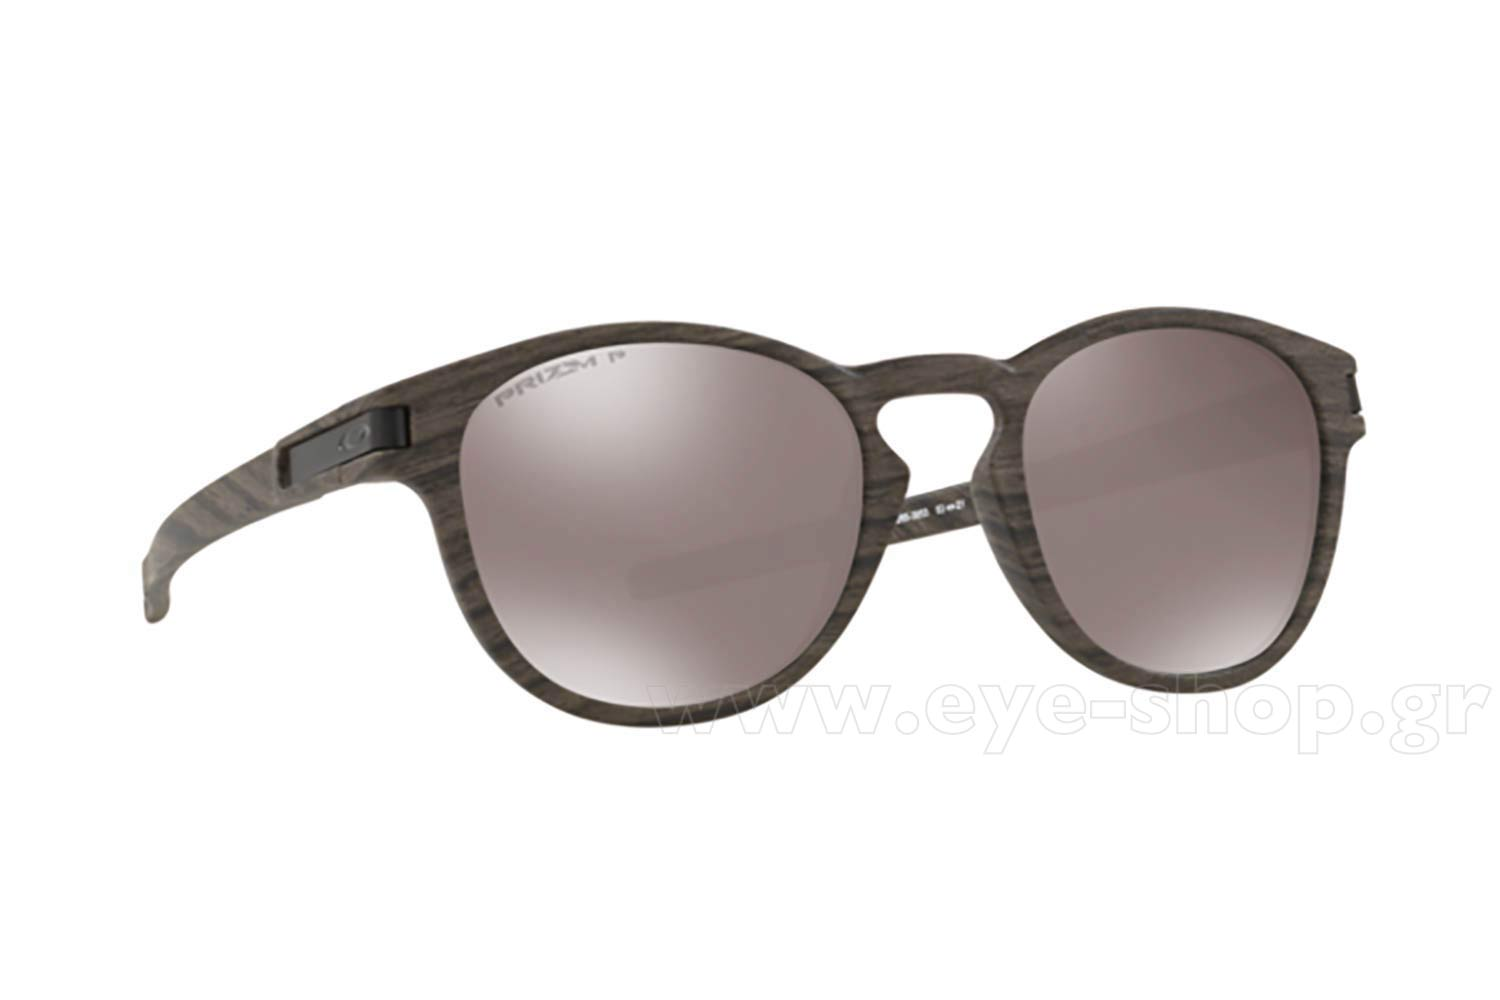 0e7da4ed97 SUNGLASSES Oakley LATCH 9265 38